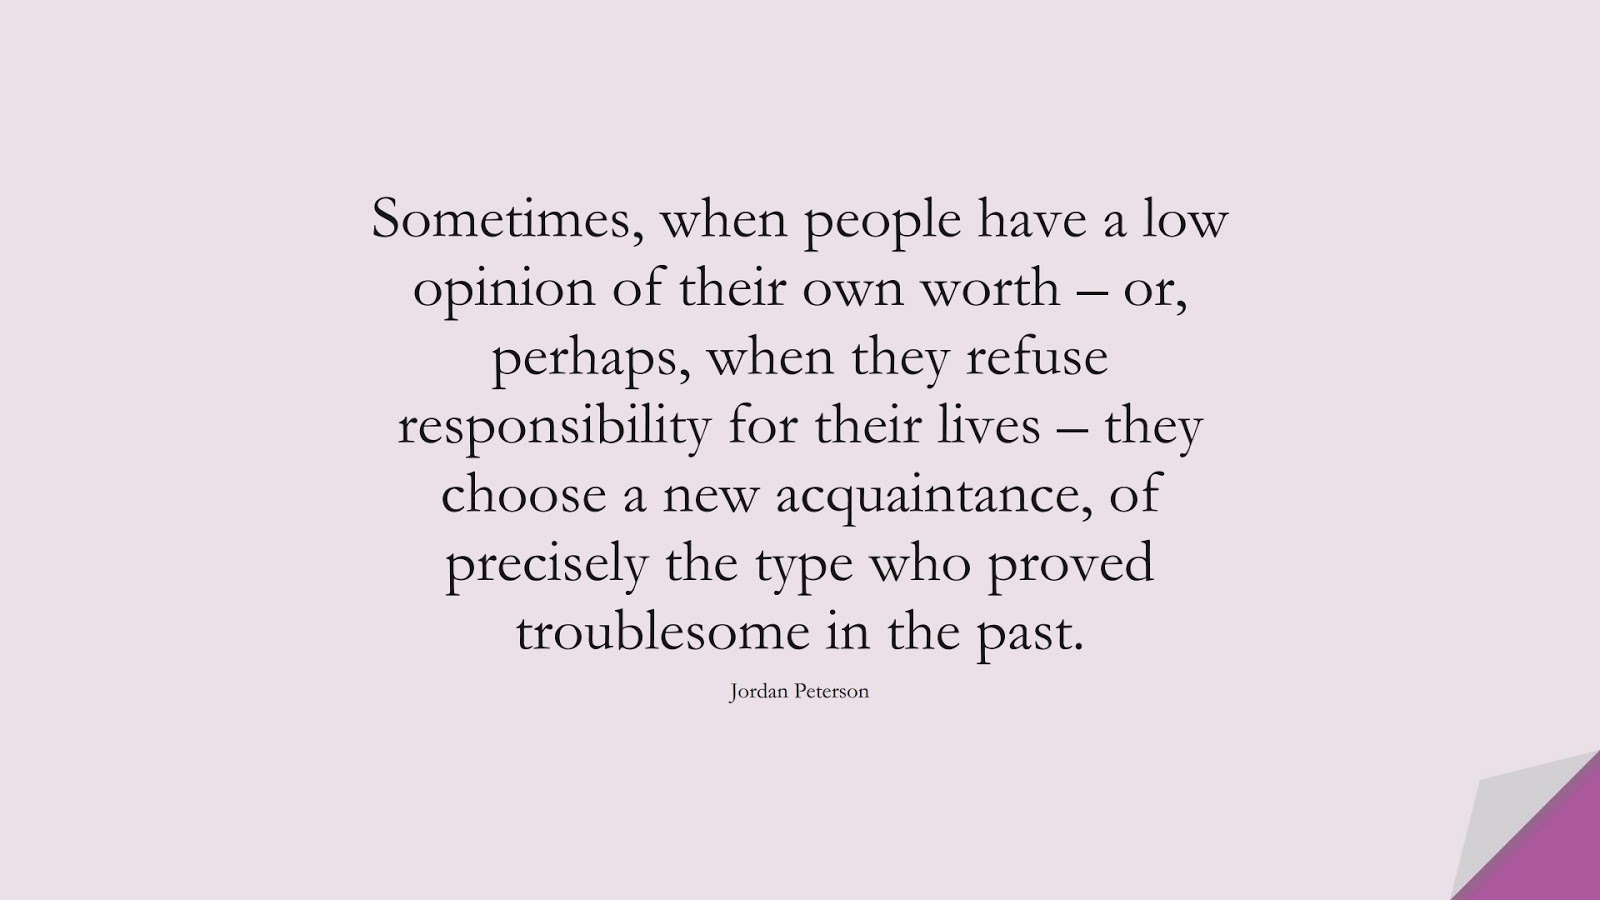 Sometimes, when people have a low opinion of their own worth – or, perhaps, when they refuse responsibility for their lives – they choose a new acquaintance, of precisely the type who proved troublesome in the past. (Jordan Peterson);  #SelfEsteemQuotes